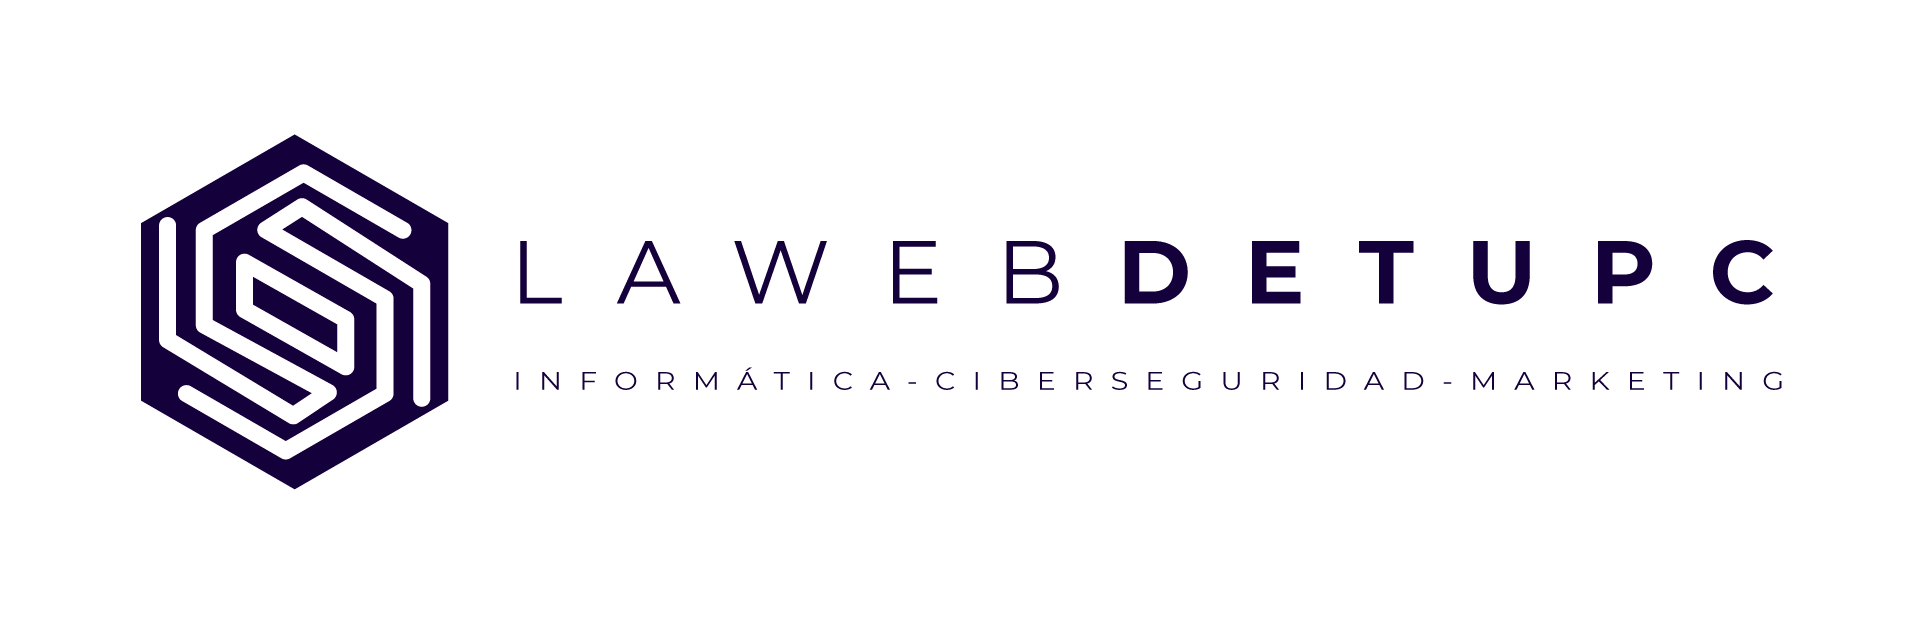 LaWeBDeTuPC: Empresa de Informática, Ciberseguridad, Marketing, Web.